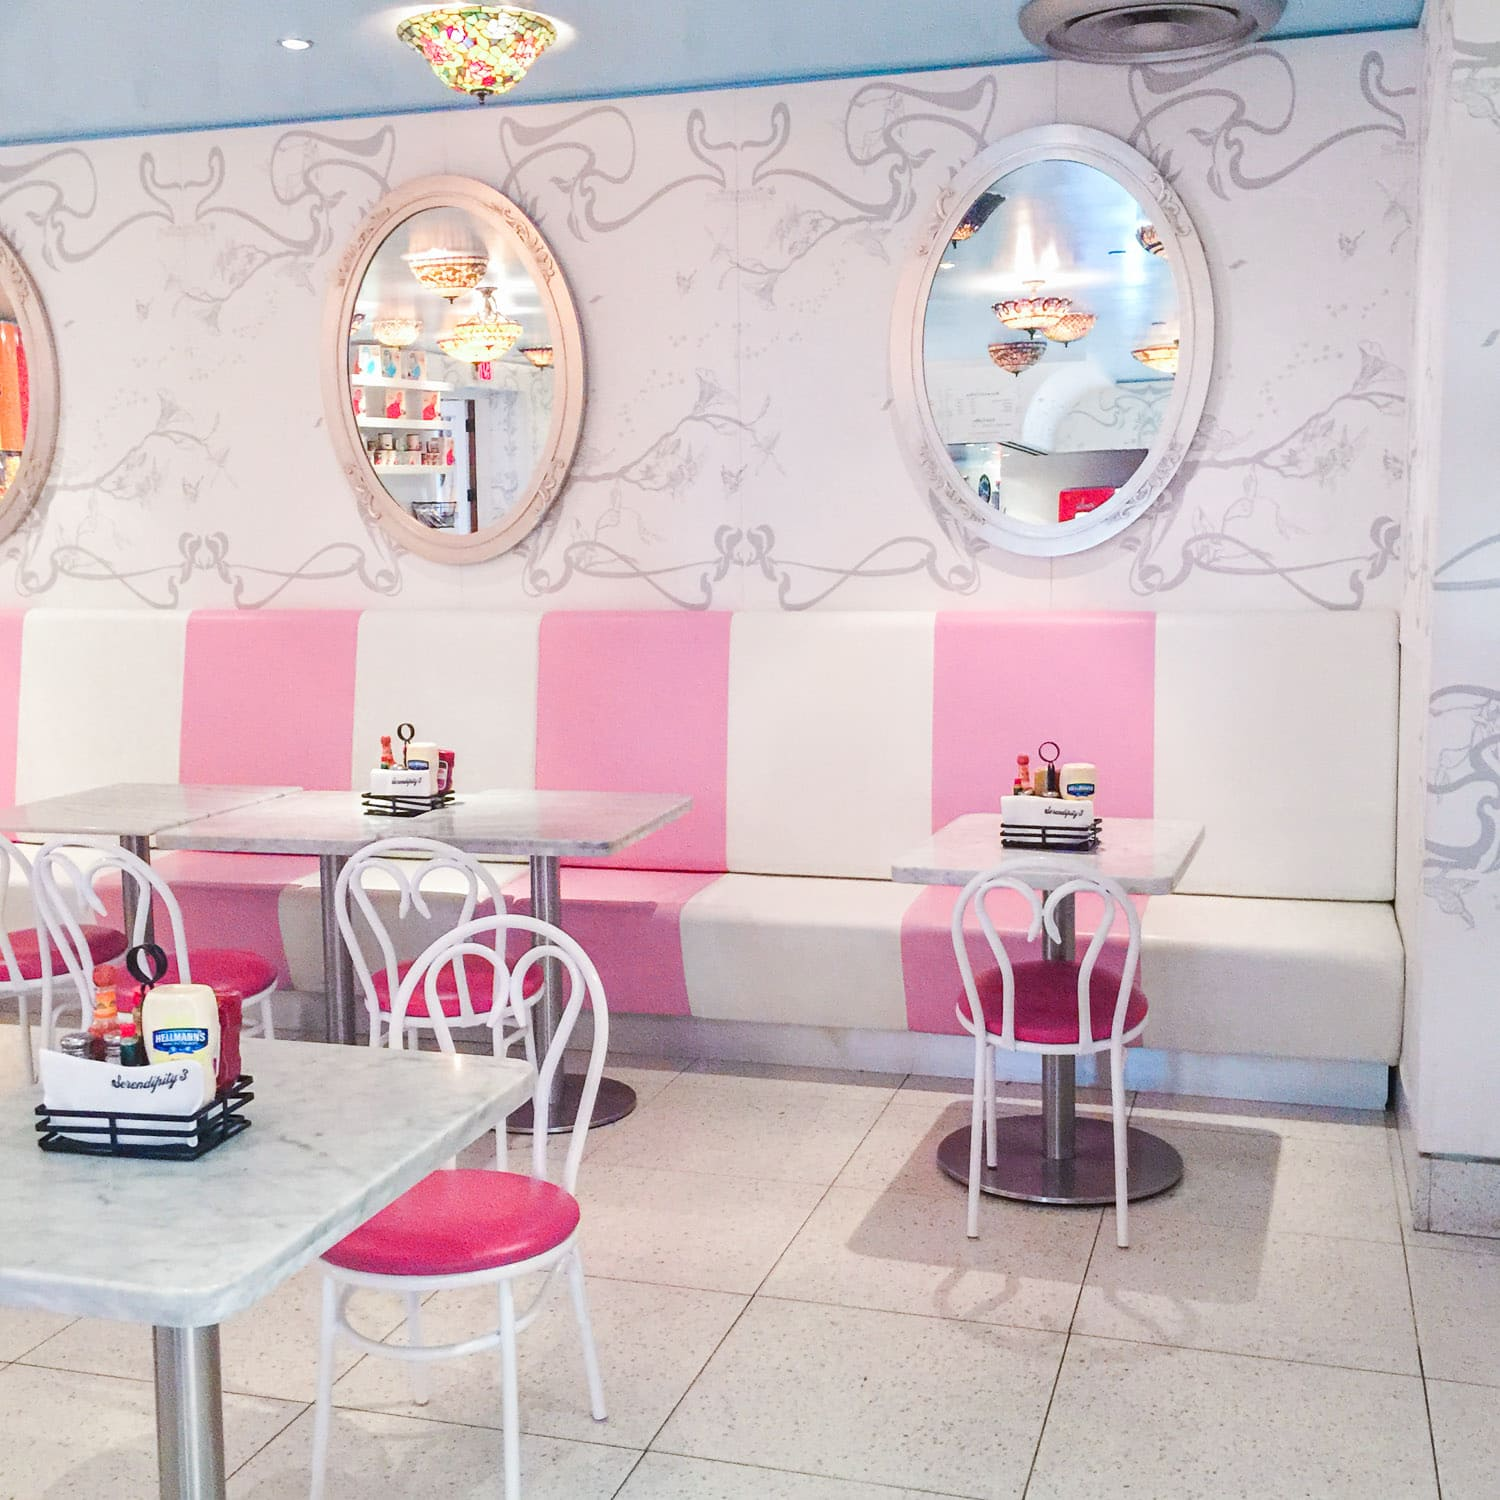 Serendipity restaurant review + A full review of the Boca Raton Resort & Club by blogger Ashley Brooke Nicholas